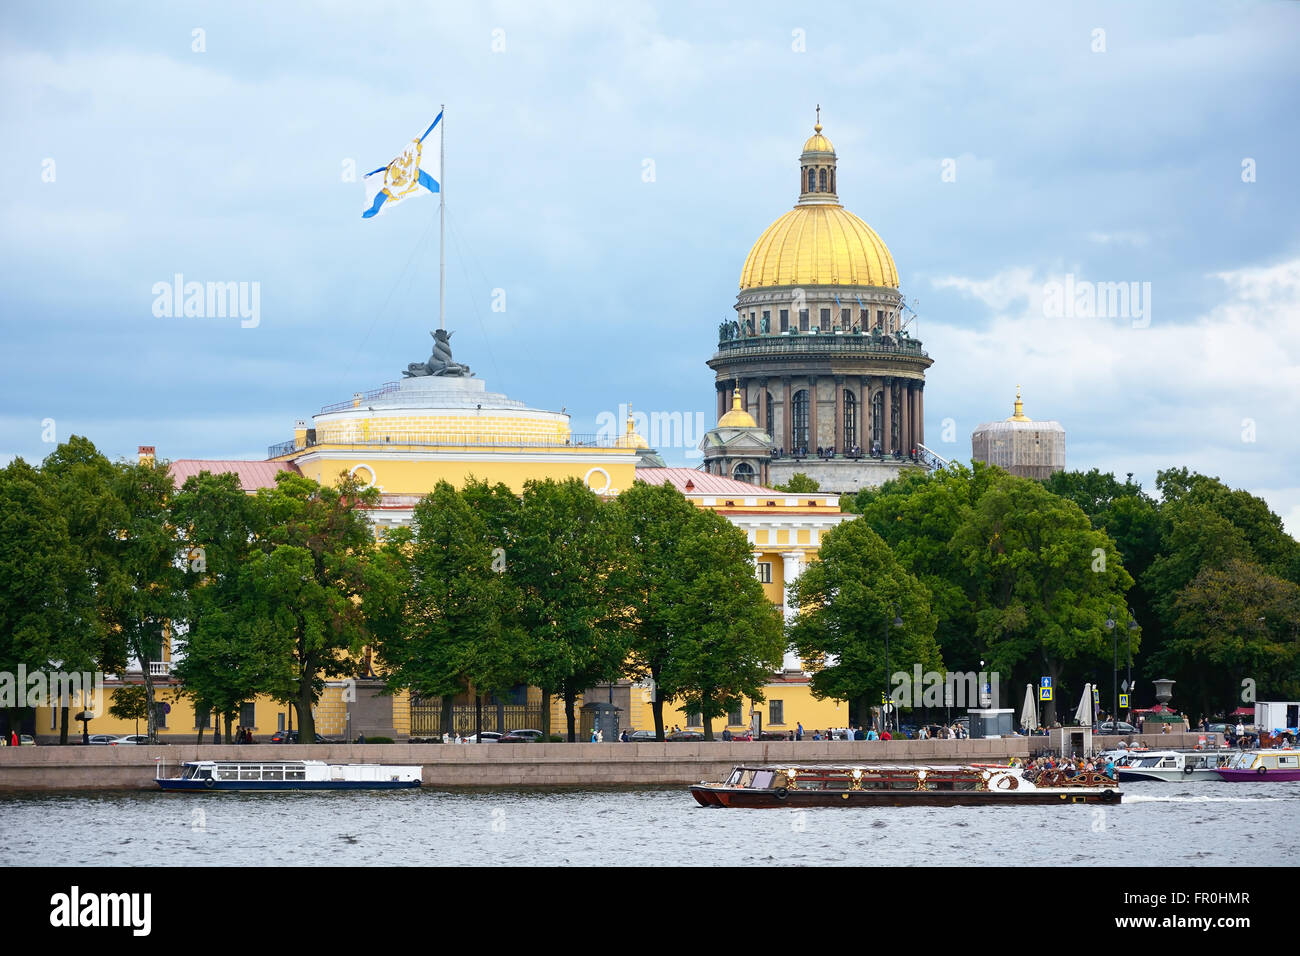 Saint-Petersburg, Admiralty embankment, the Admiralty building and St. Isaac's Cathedral dome. - Stock Image